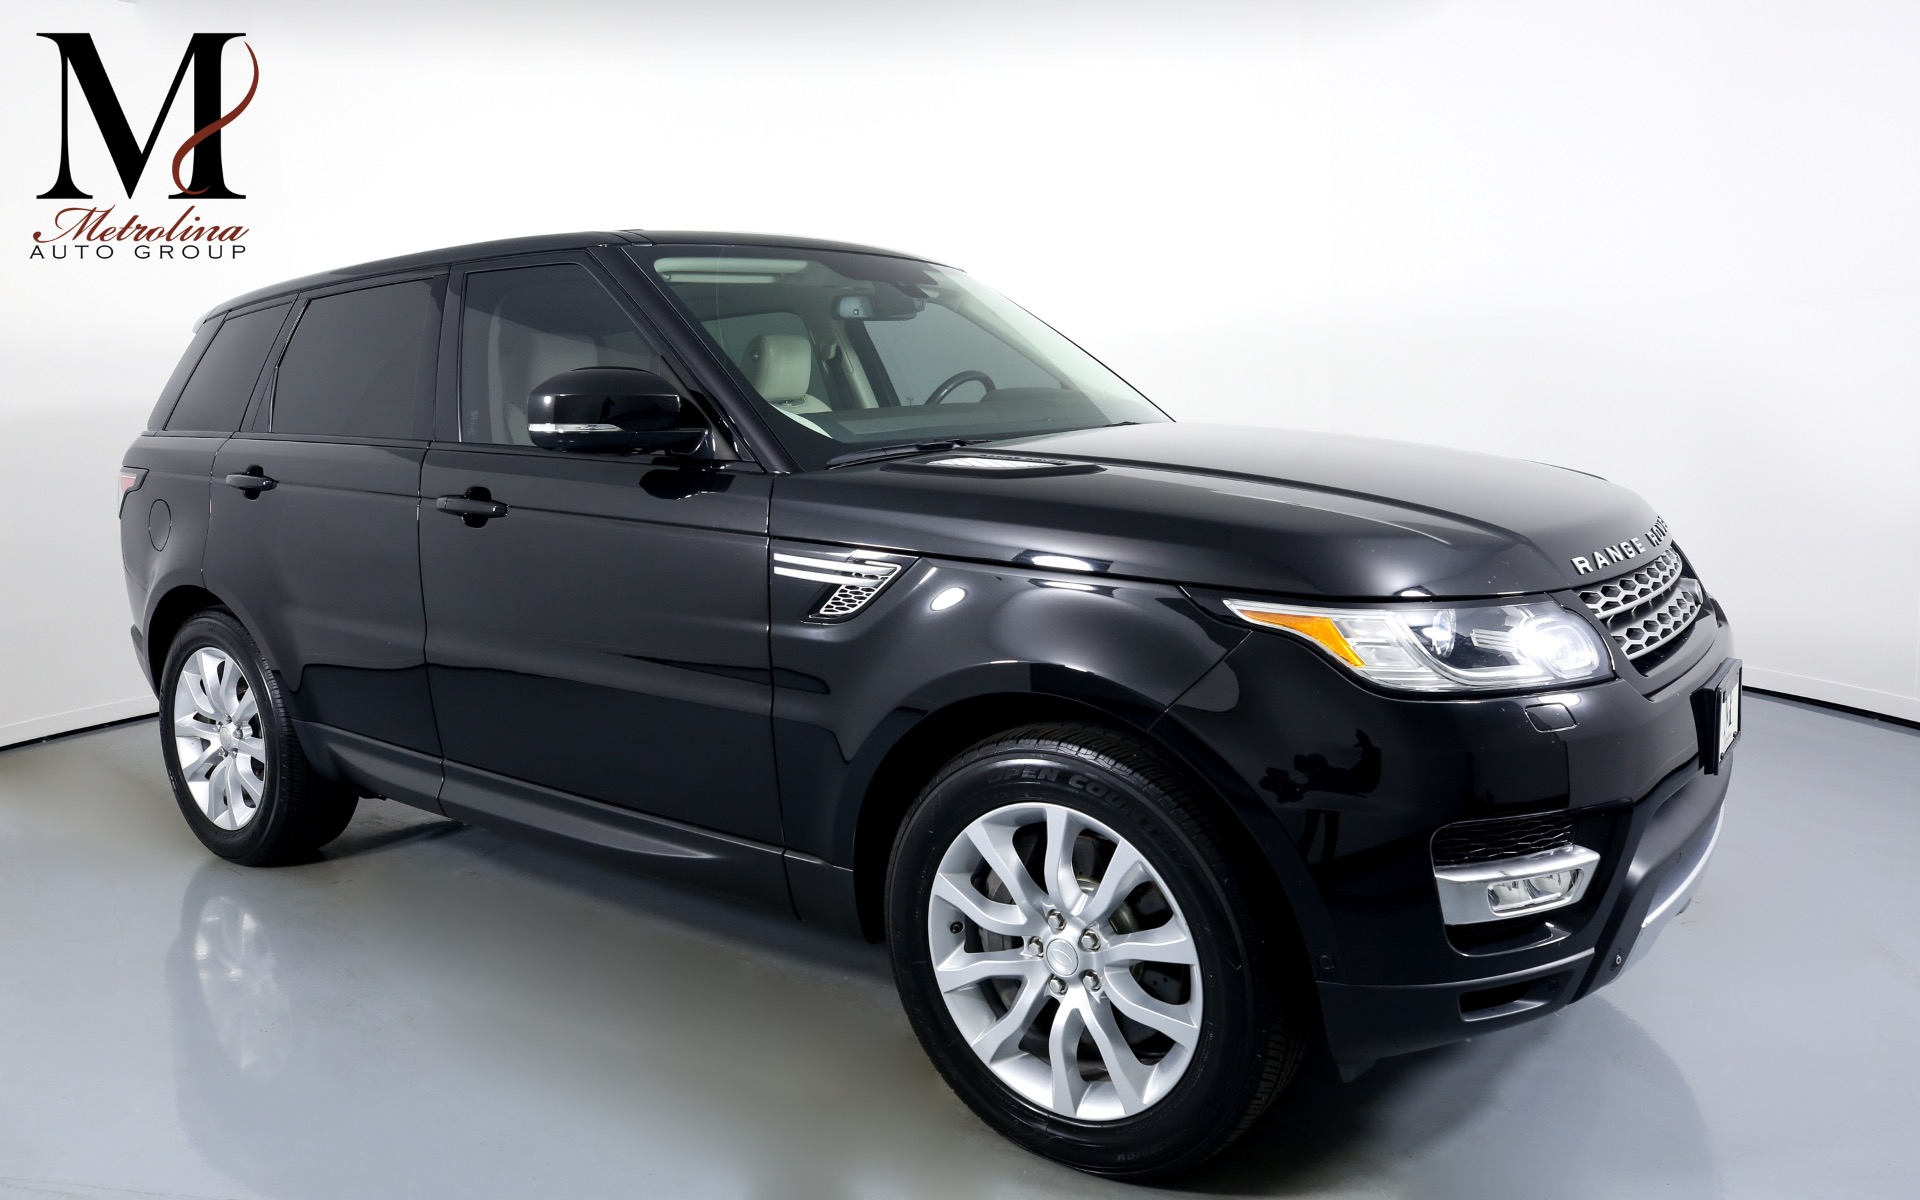 Used 2014 Land Rover Range Rover Sport Supercharged for sale $29,996 at Metrolina Auto Group in Charlotte NC 28217 - 1